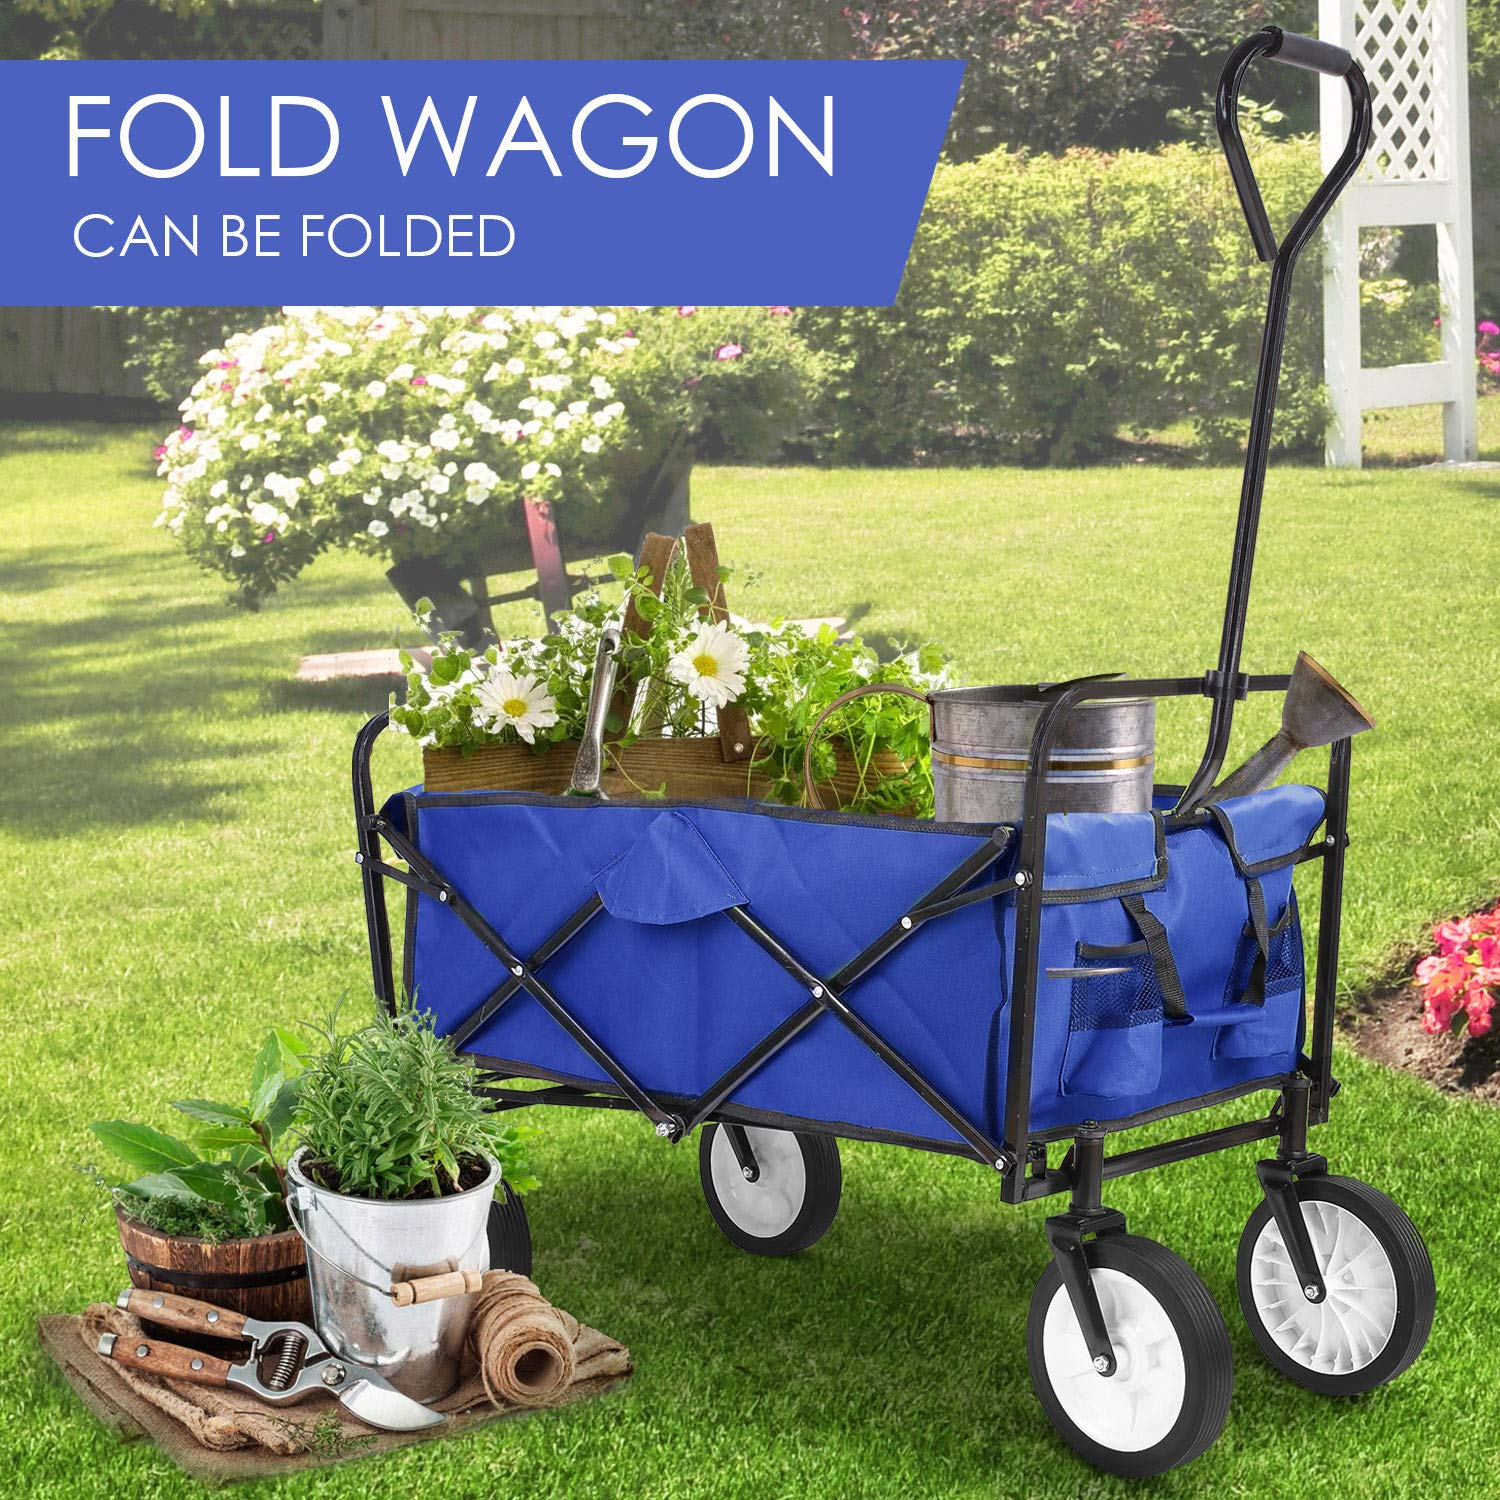 Collapsible Outdoor Utility Wagon, Heavy Duty Folding Garden Portable Hand Cart, with 8'' Rubber Wheels and Drink Holder, Suit for Shopping and Park Picnic, Beach Trip and Camping (Blue) by HEMBOR (Image #6)